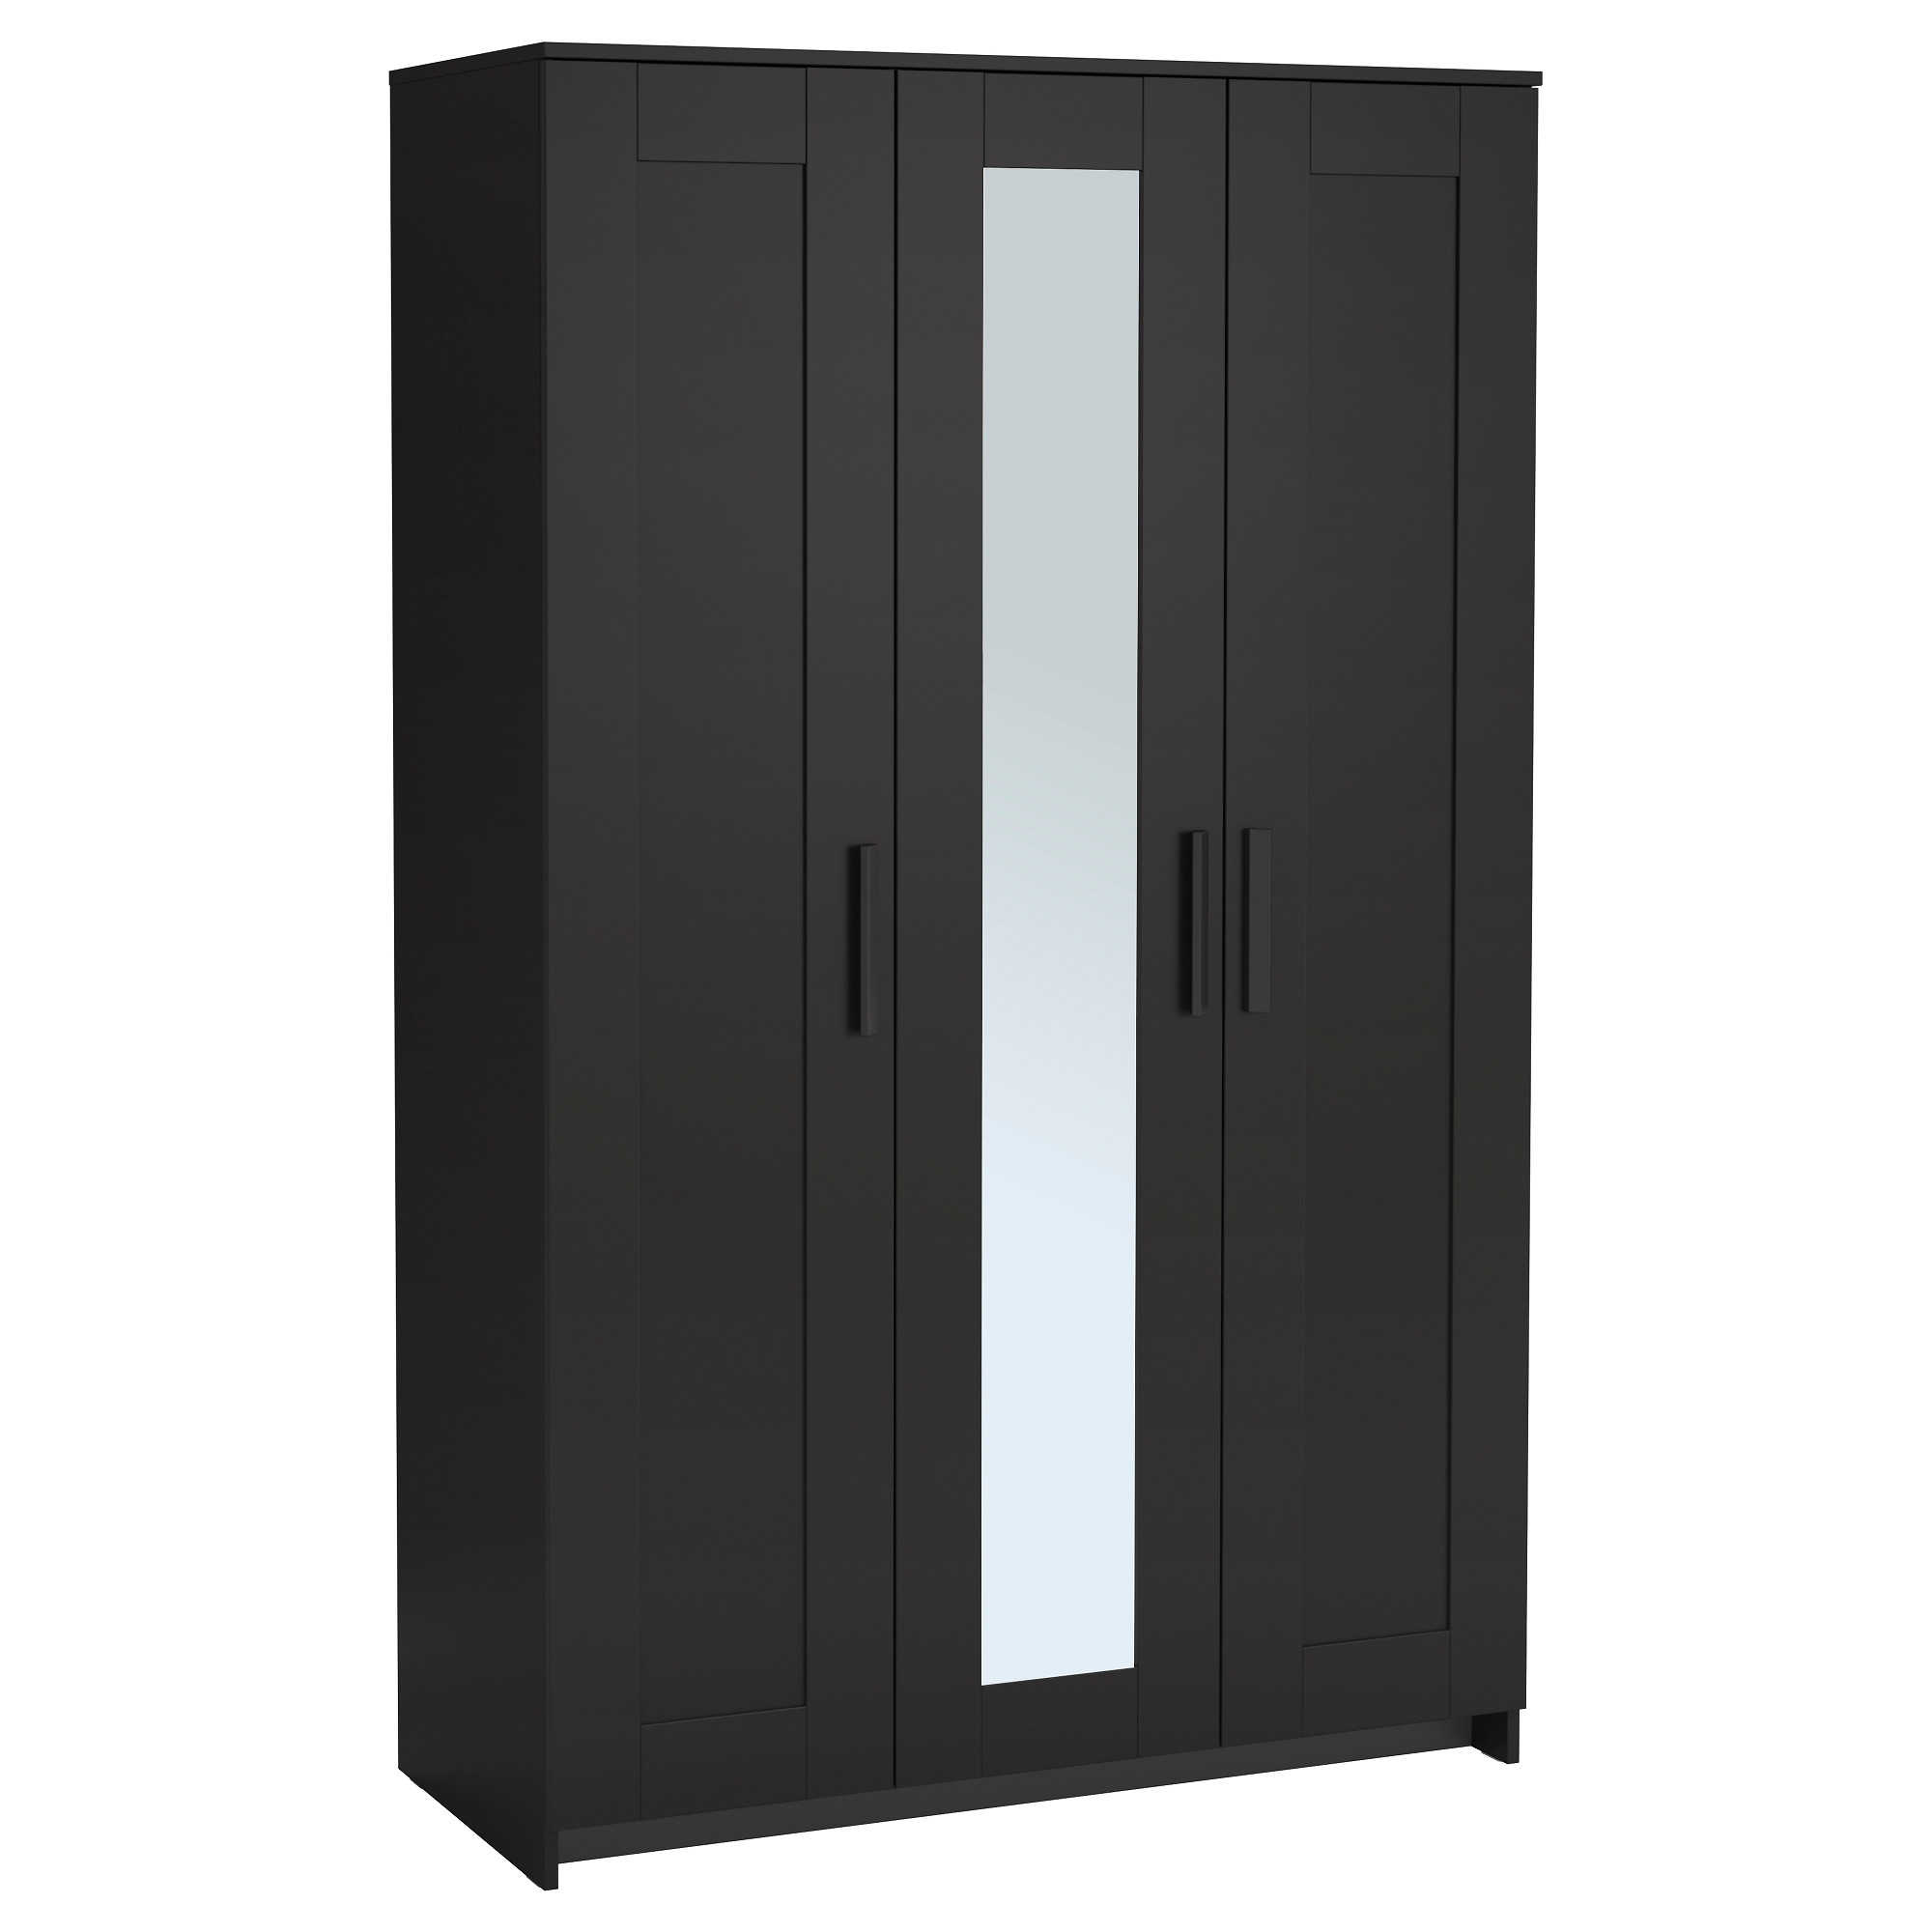 Black 3 Door Wardrobes For Most Recently Released Brimnes Wardrobe With 3 Doors – White – Ikea (View 3 of 15)